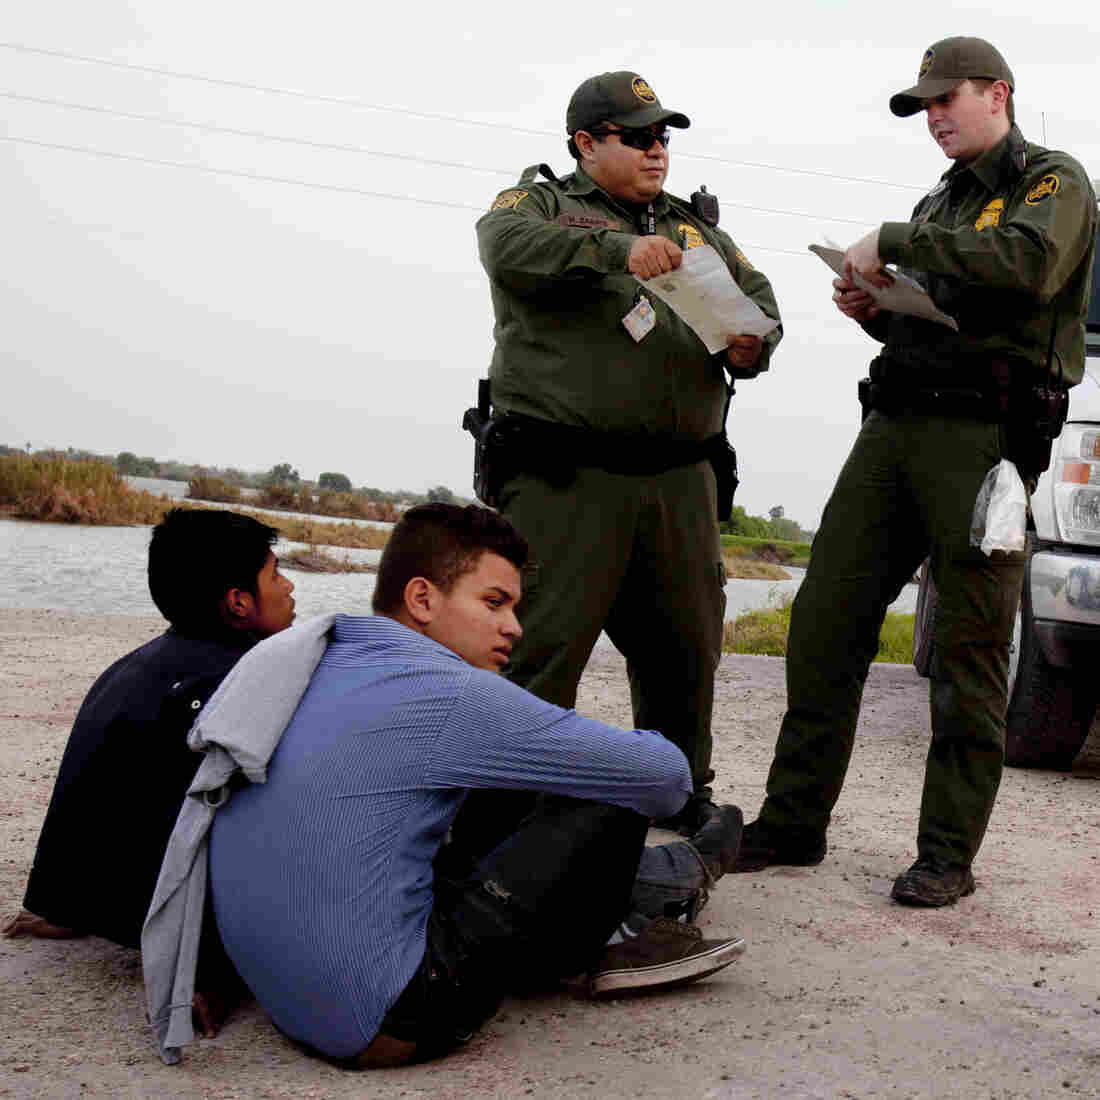 U.S. To Open Immigrant Family Detention Centers In Response To Influx